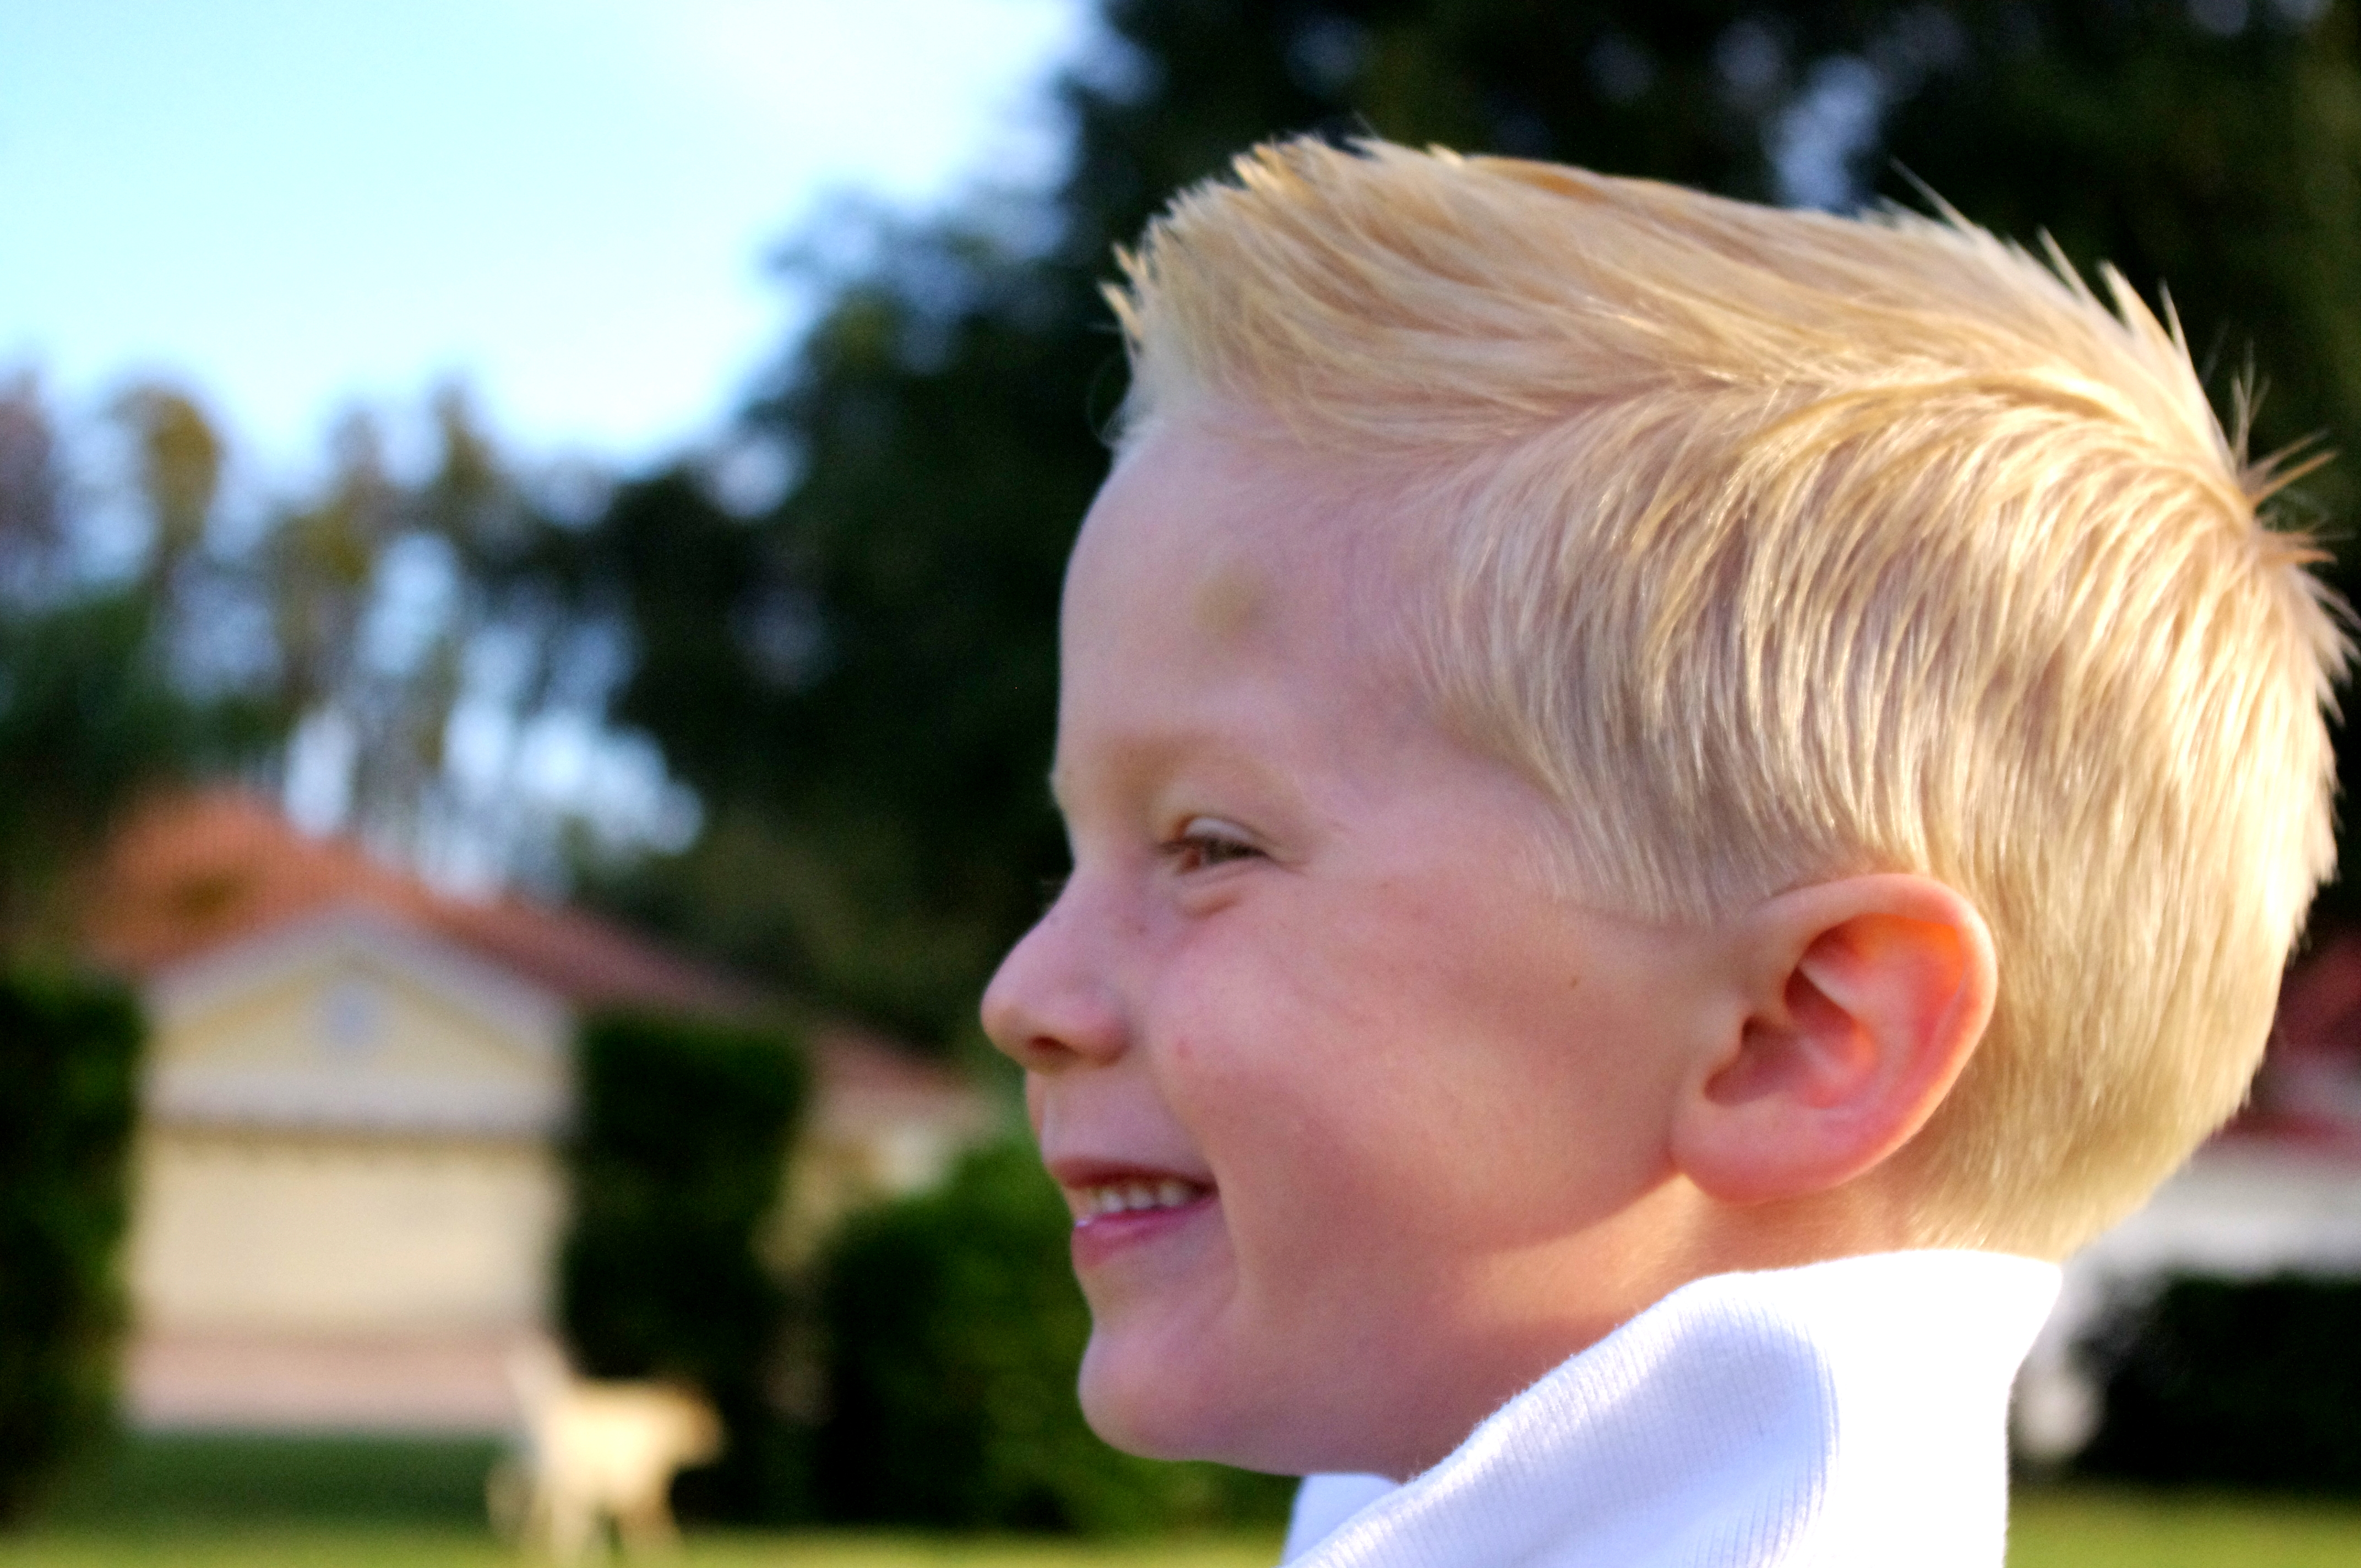 ... for surfer boy hairstyles viewing 12 images for surfer boy hairstyles